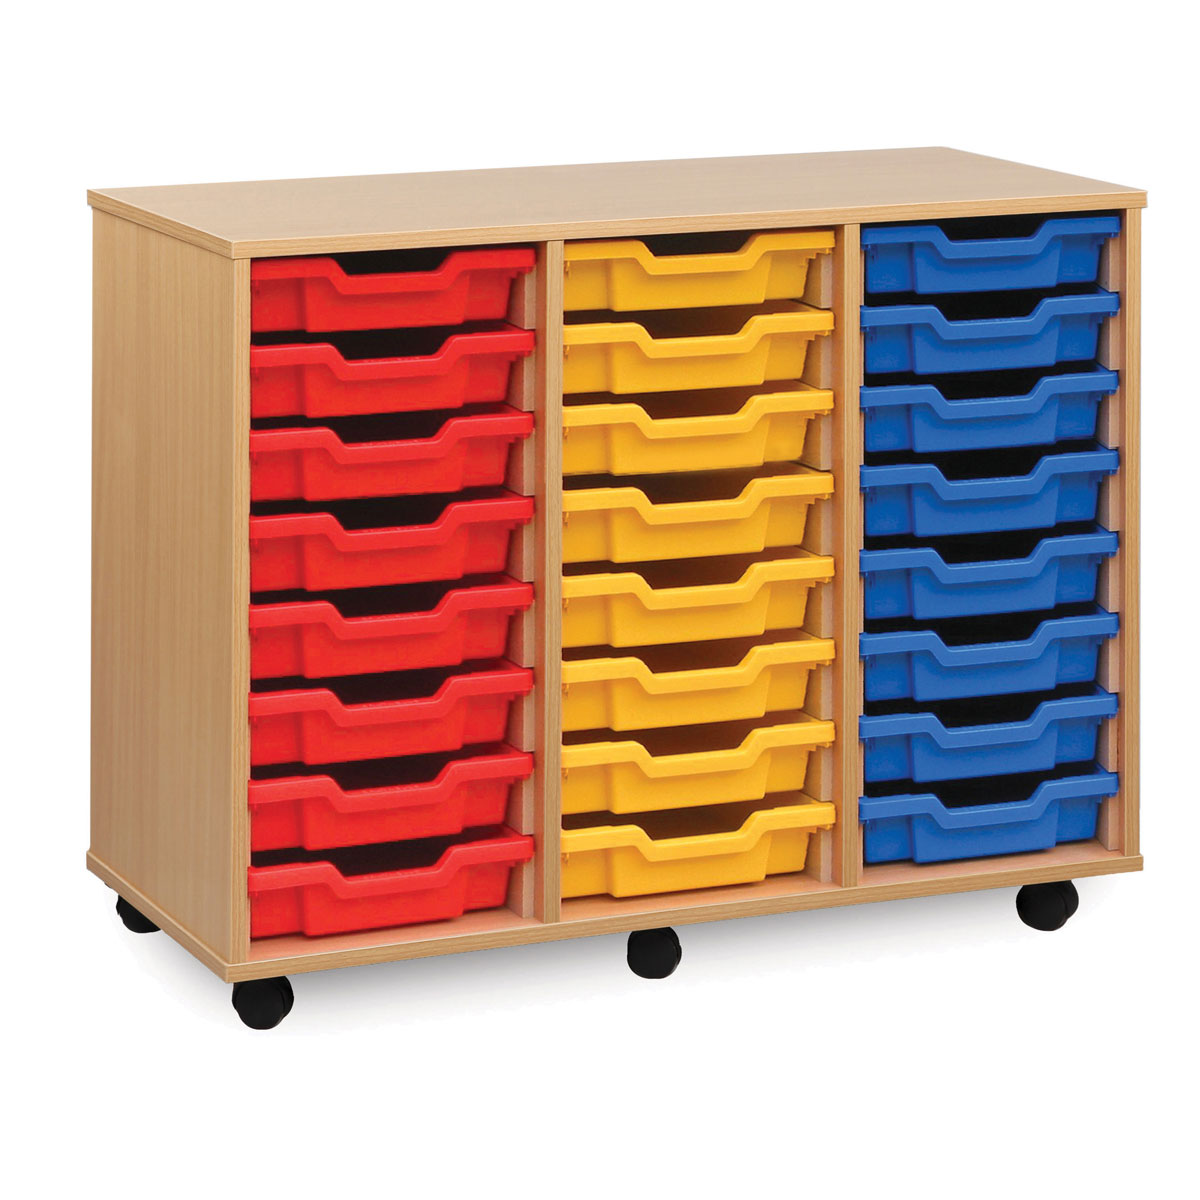 24 shallow tray storage unit meq4w buy at primary ict for Shallow shelving unit